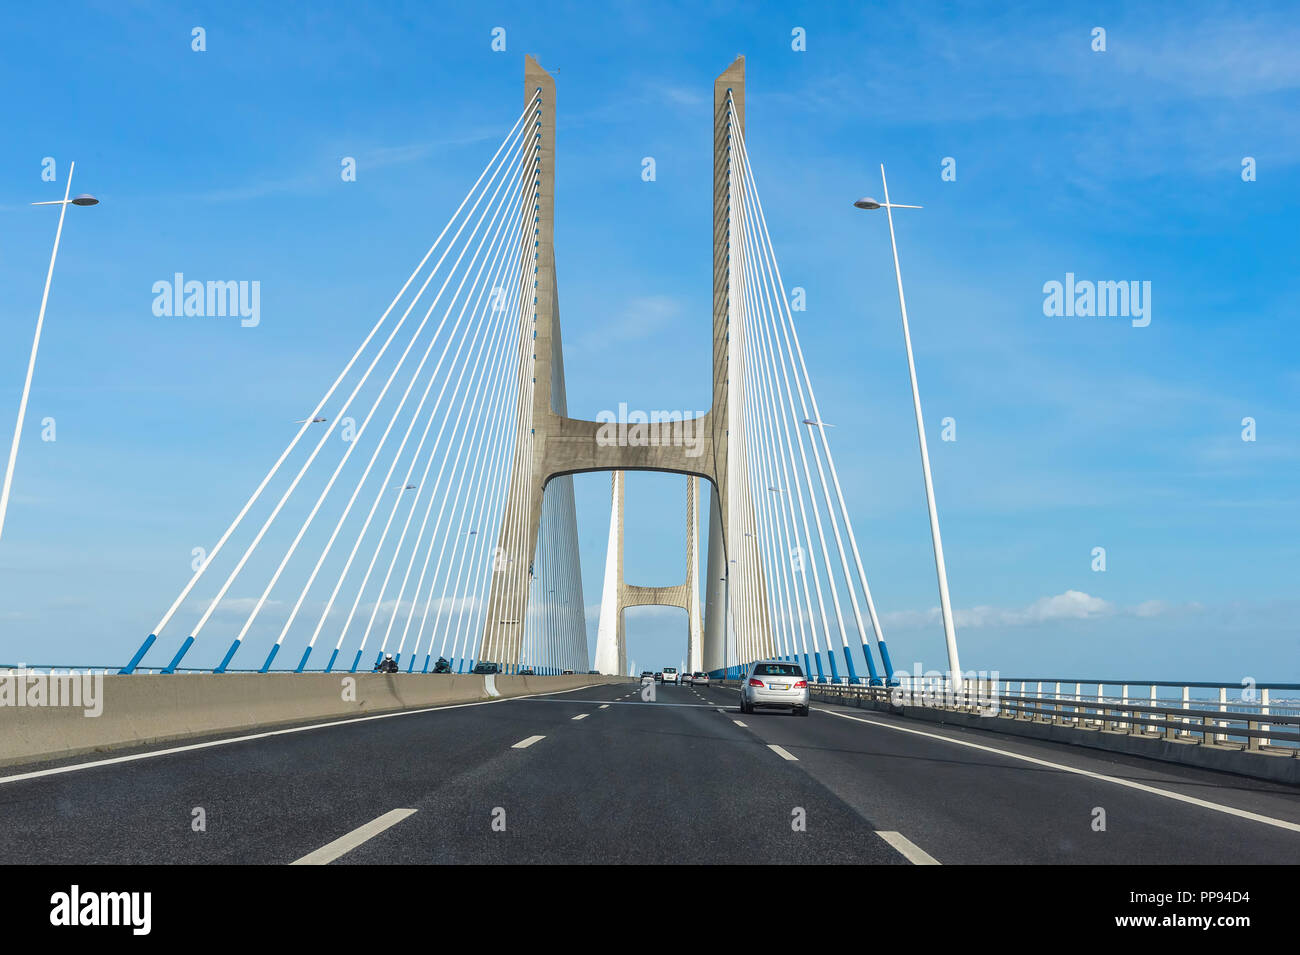 Ponte Vasco de Gama bridge, longest bridge in Europe, Lisbon, Portugal - Stock Image